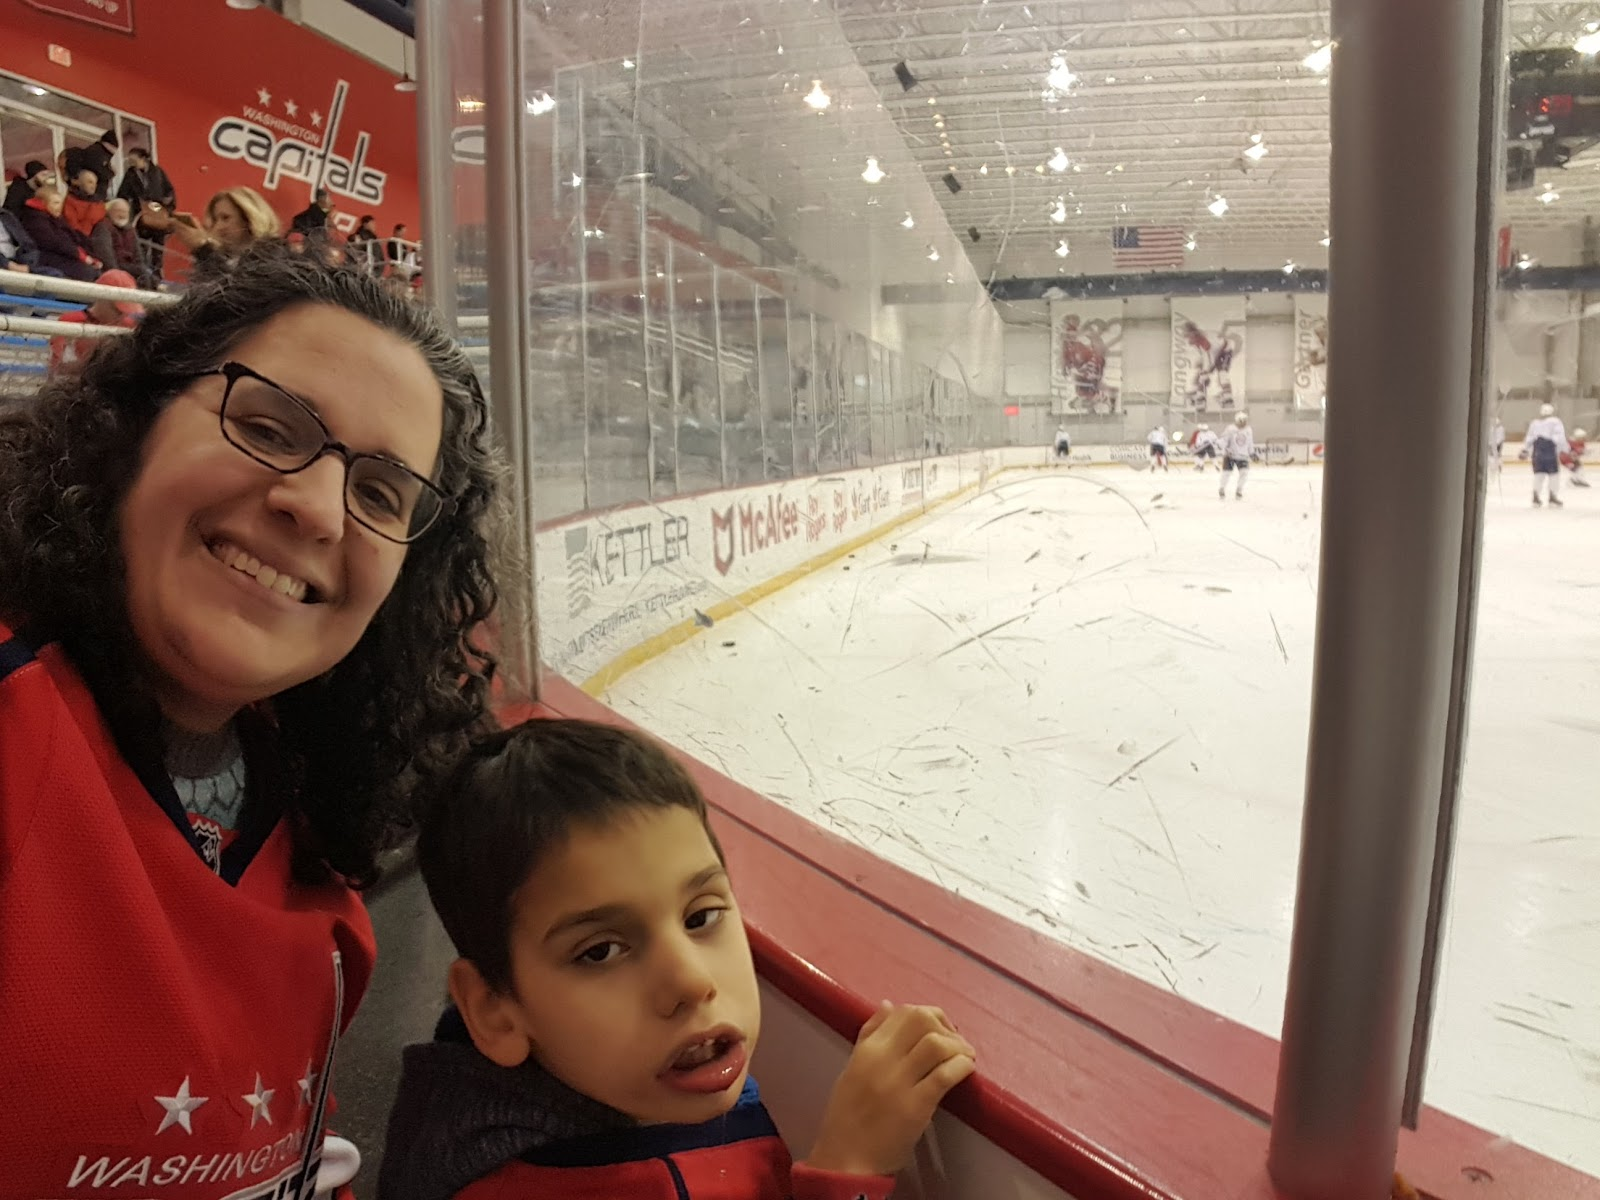 1fa144b2 Today was Zachary's 6th time participating in Dreams for Kids DC's Caps  hockey clinic. Read about our previous experiences here: 2017, 2016, 2015,  2014, ...